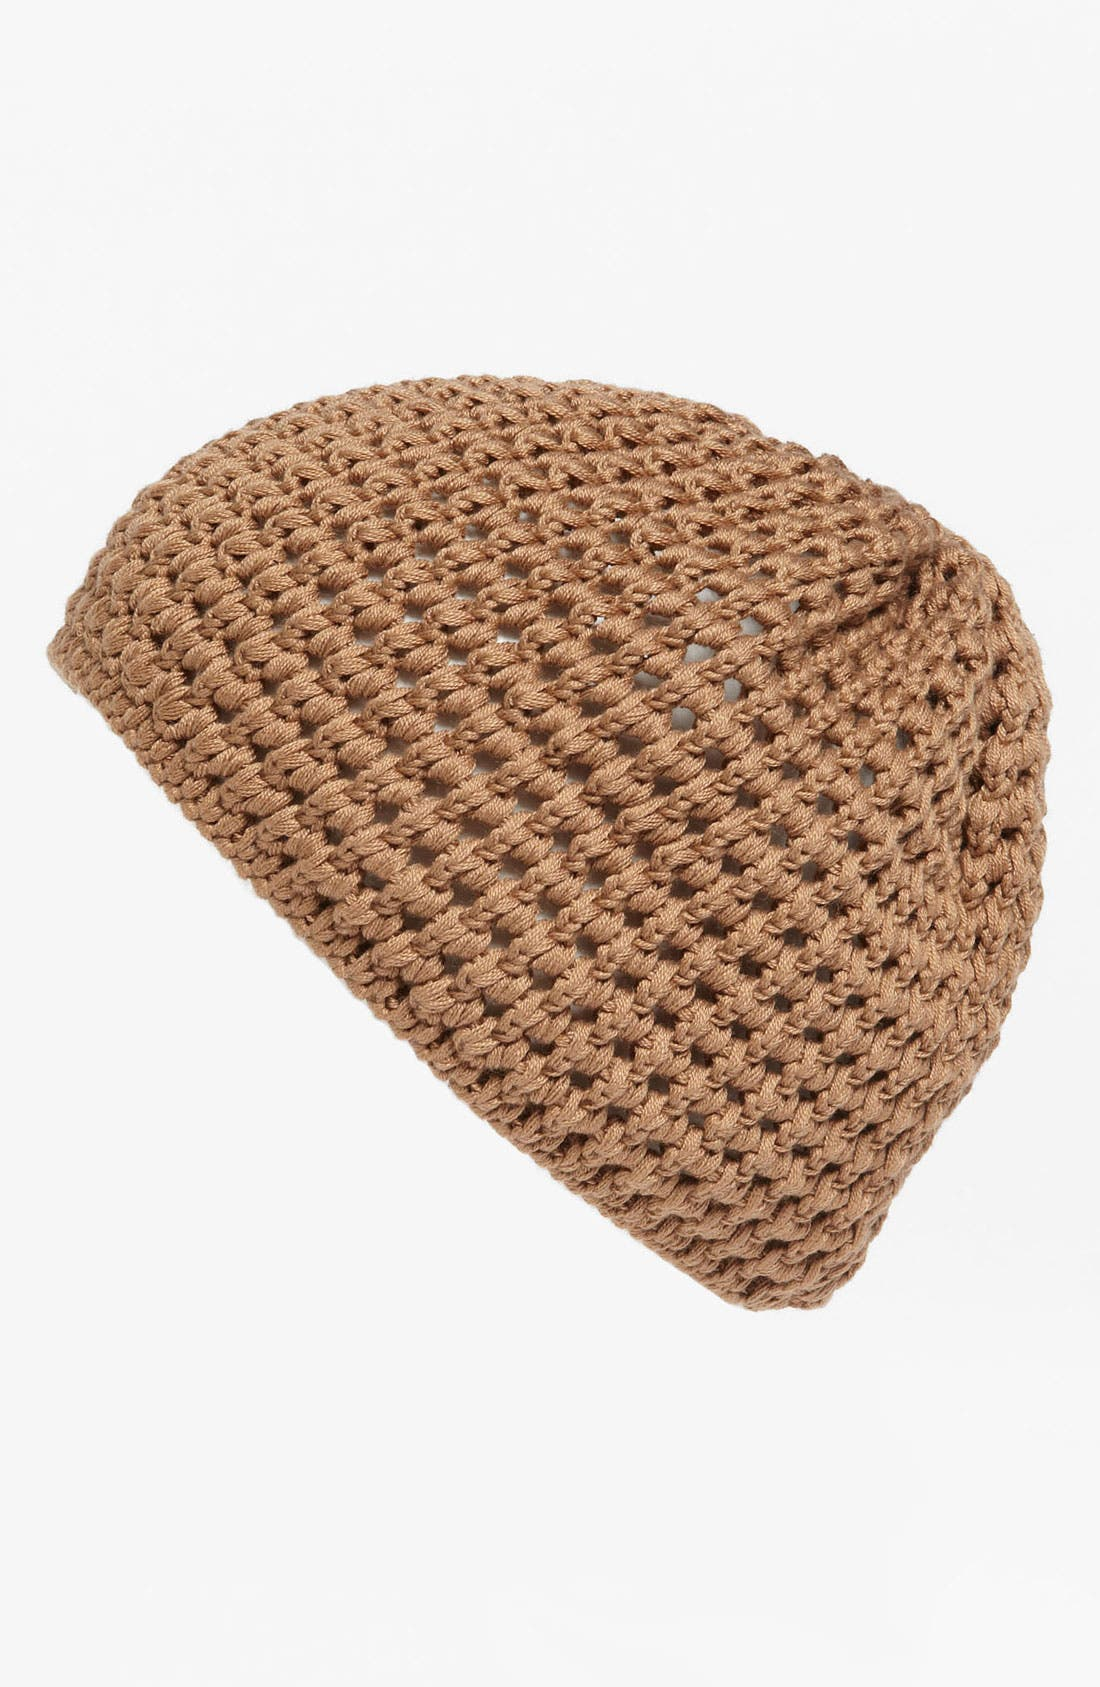 Alternate Image 1 Selected - Tarnish 'Spring' Slouchy Hat